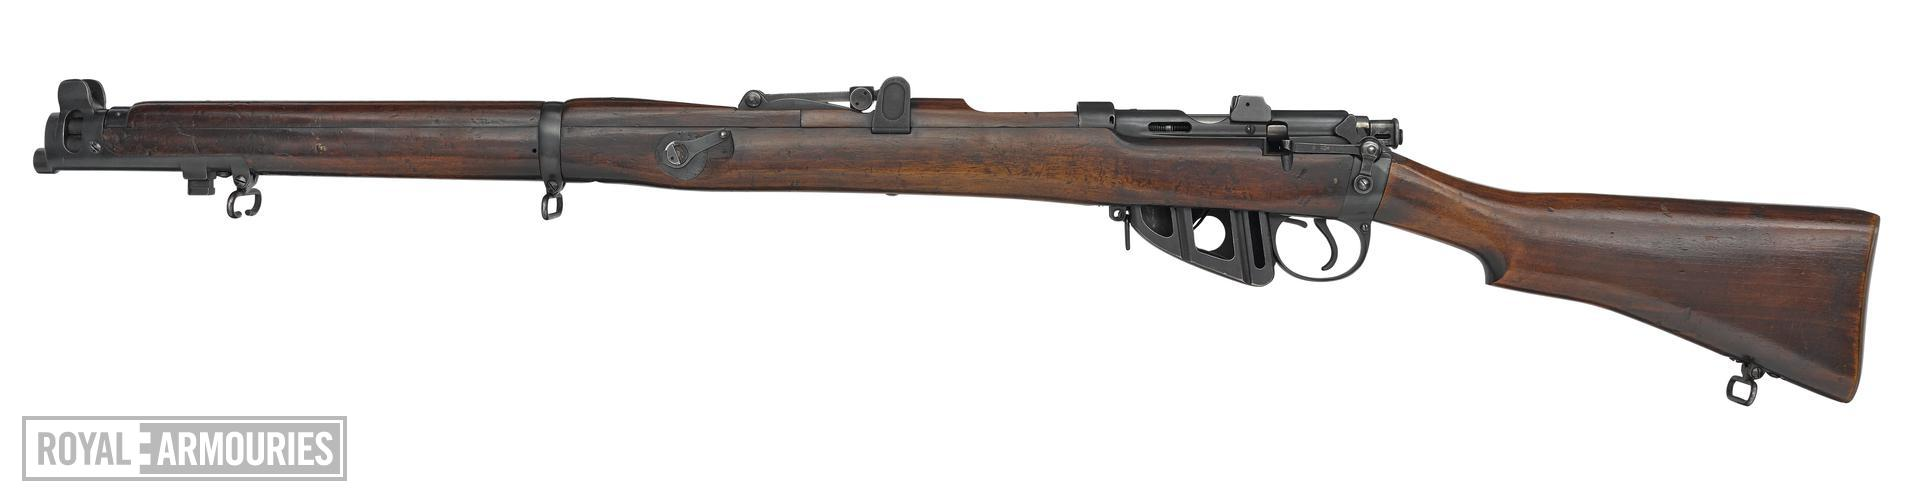 Skeletonised Short Magazine Lee Enfield Mk.III centrefire bolt action rifle, Britain, about 1908.